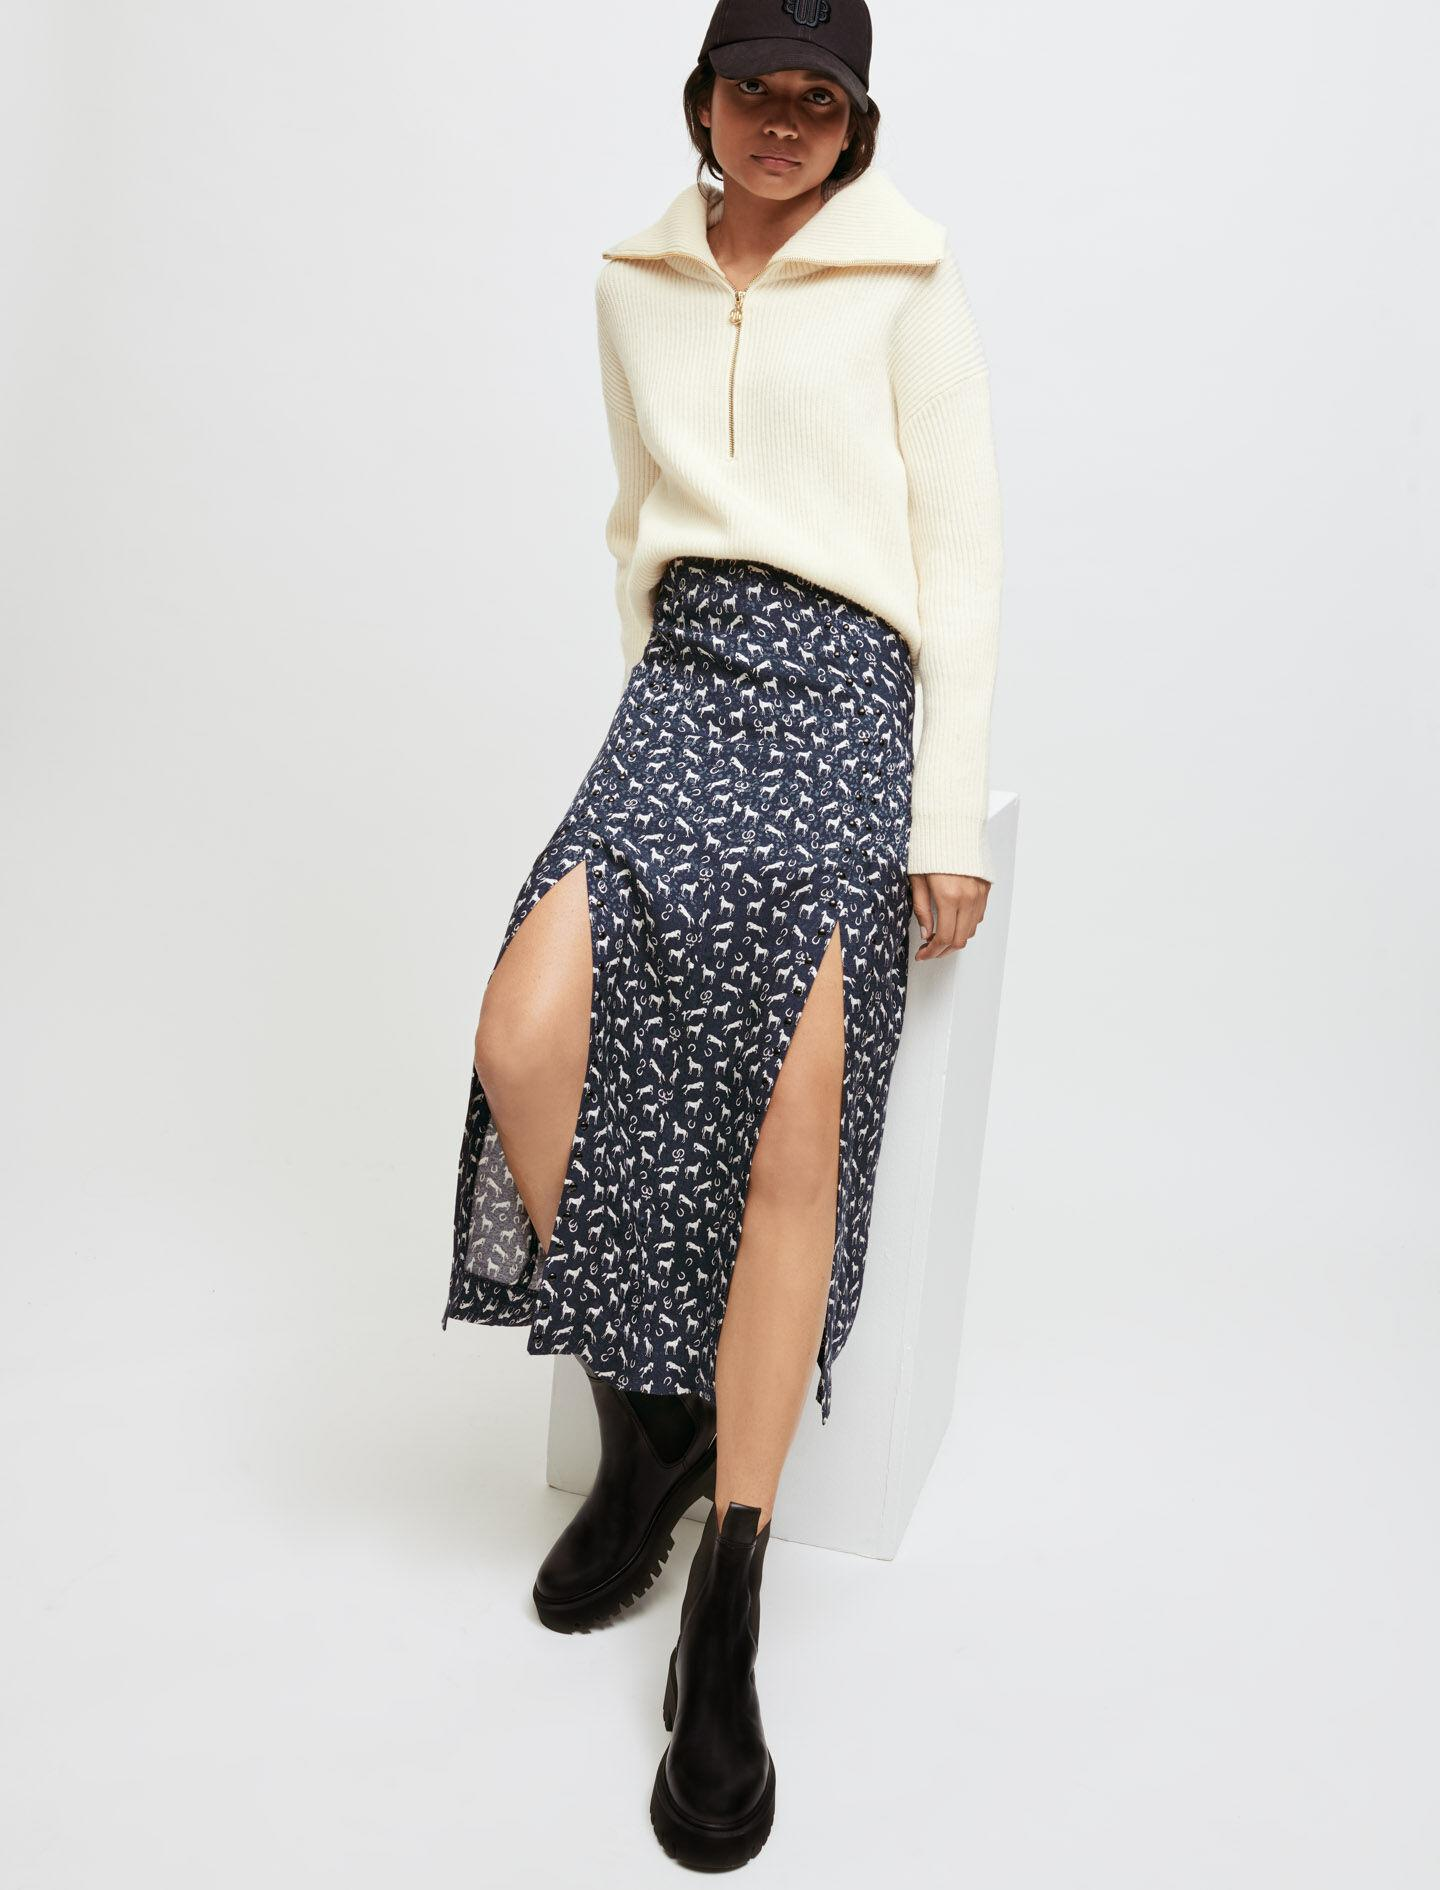 HORSE PRINT JACQUARD SKIRT WITH STUDS 2